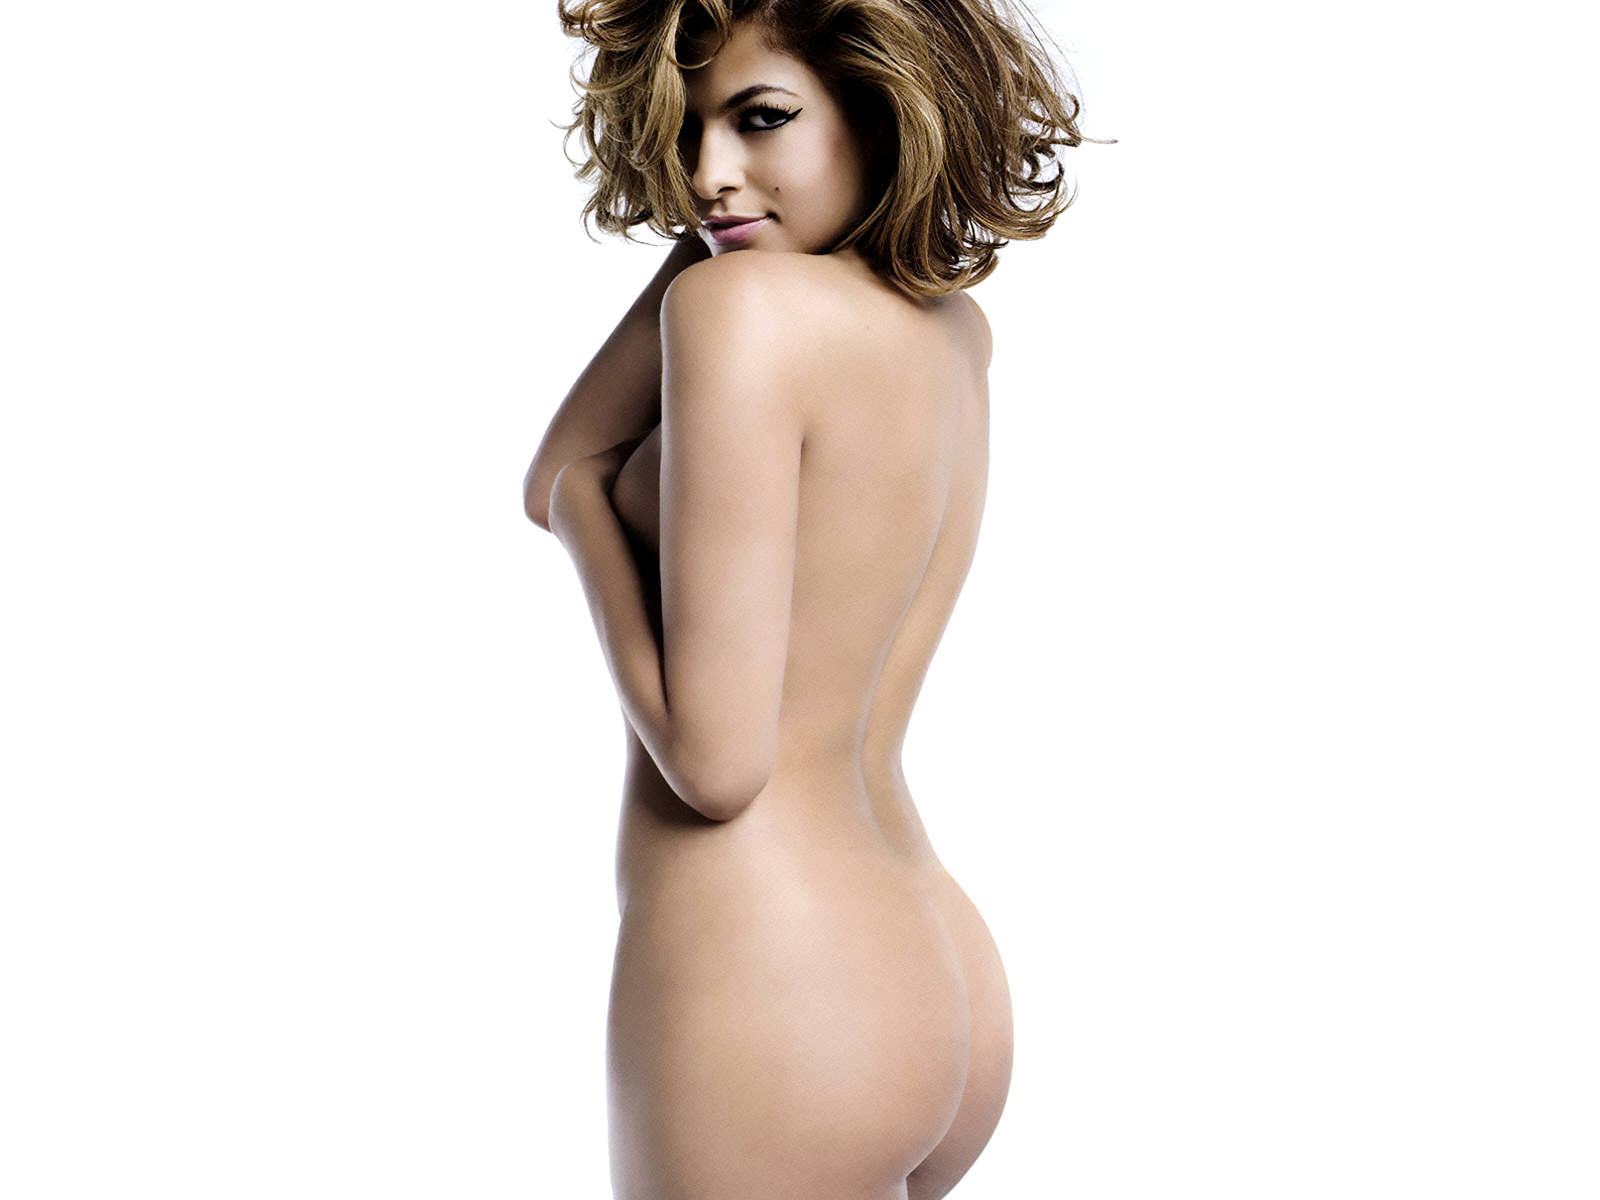 Eva Mendes Topless Photo